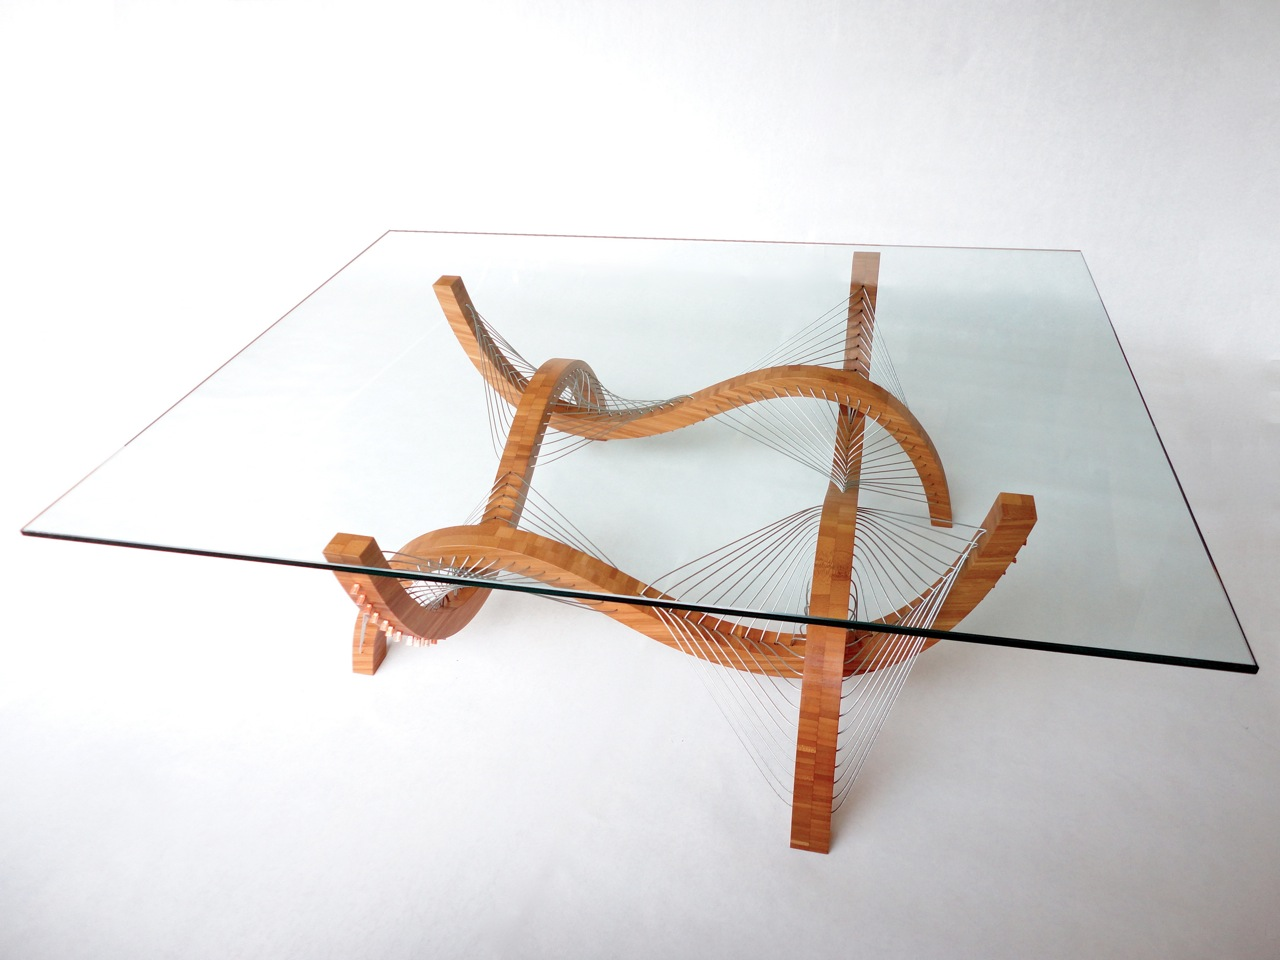 Tense Coffee Table 2.0